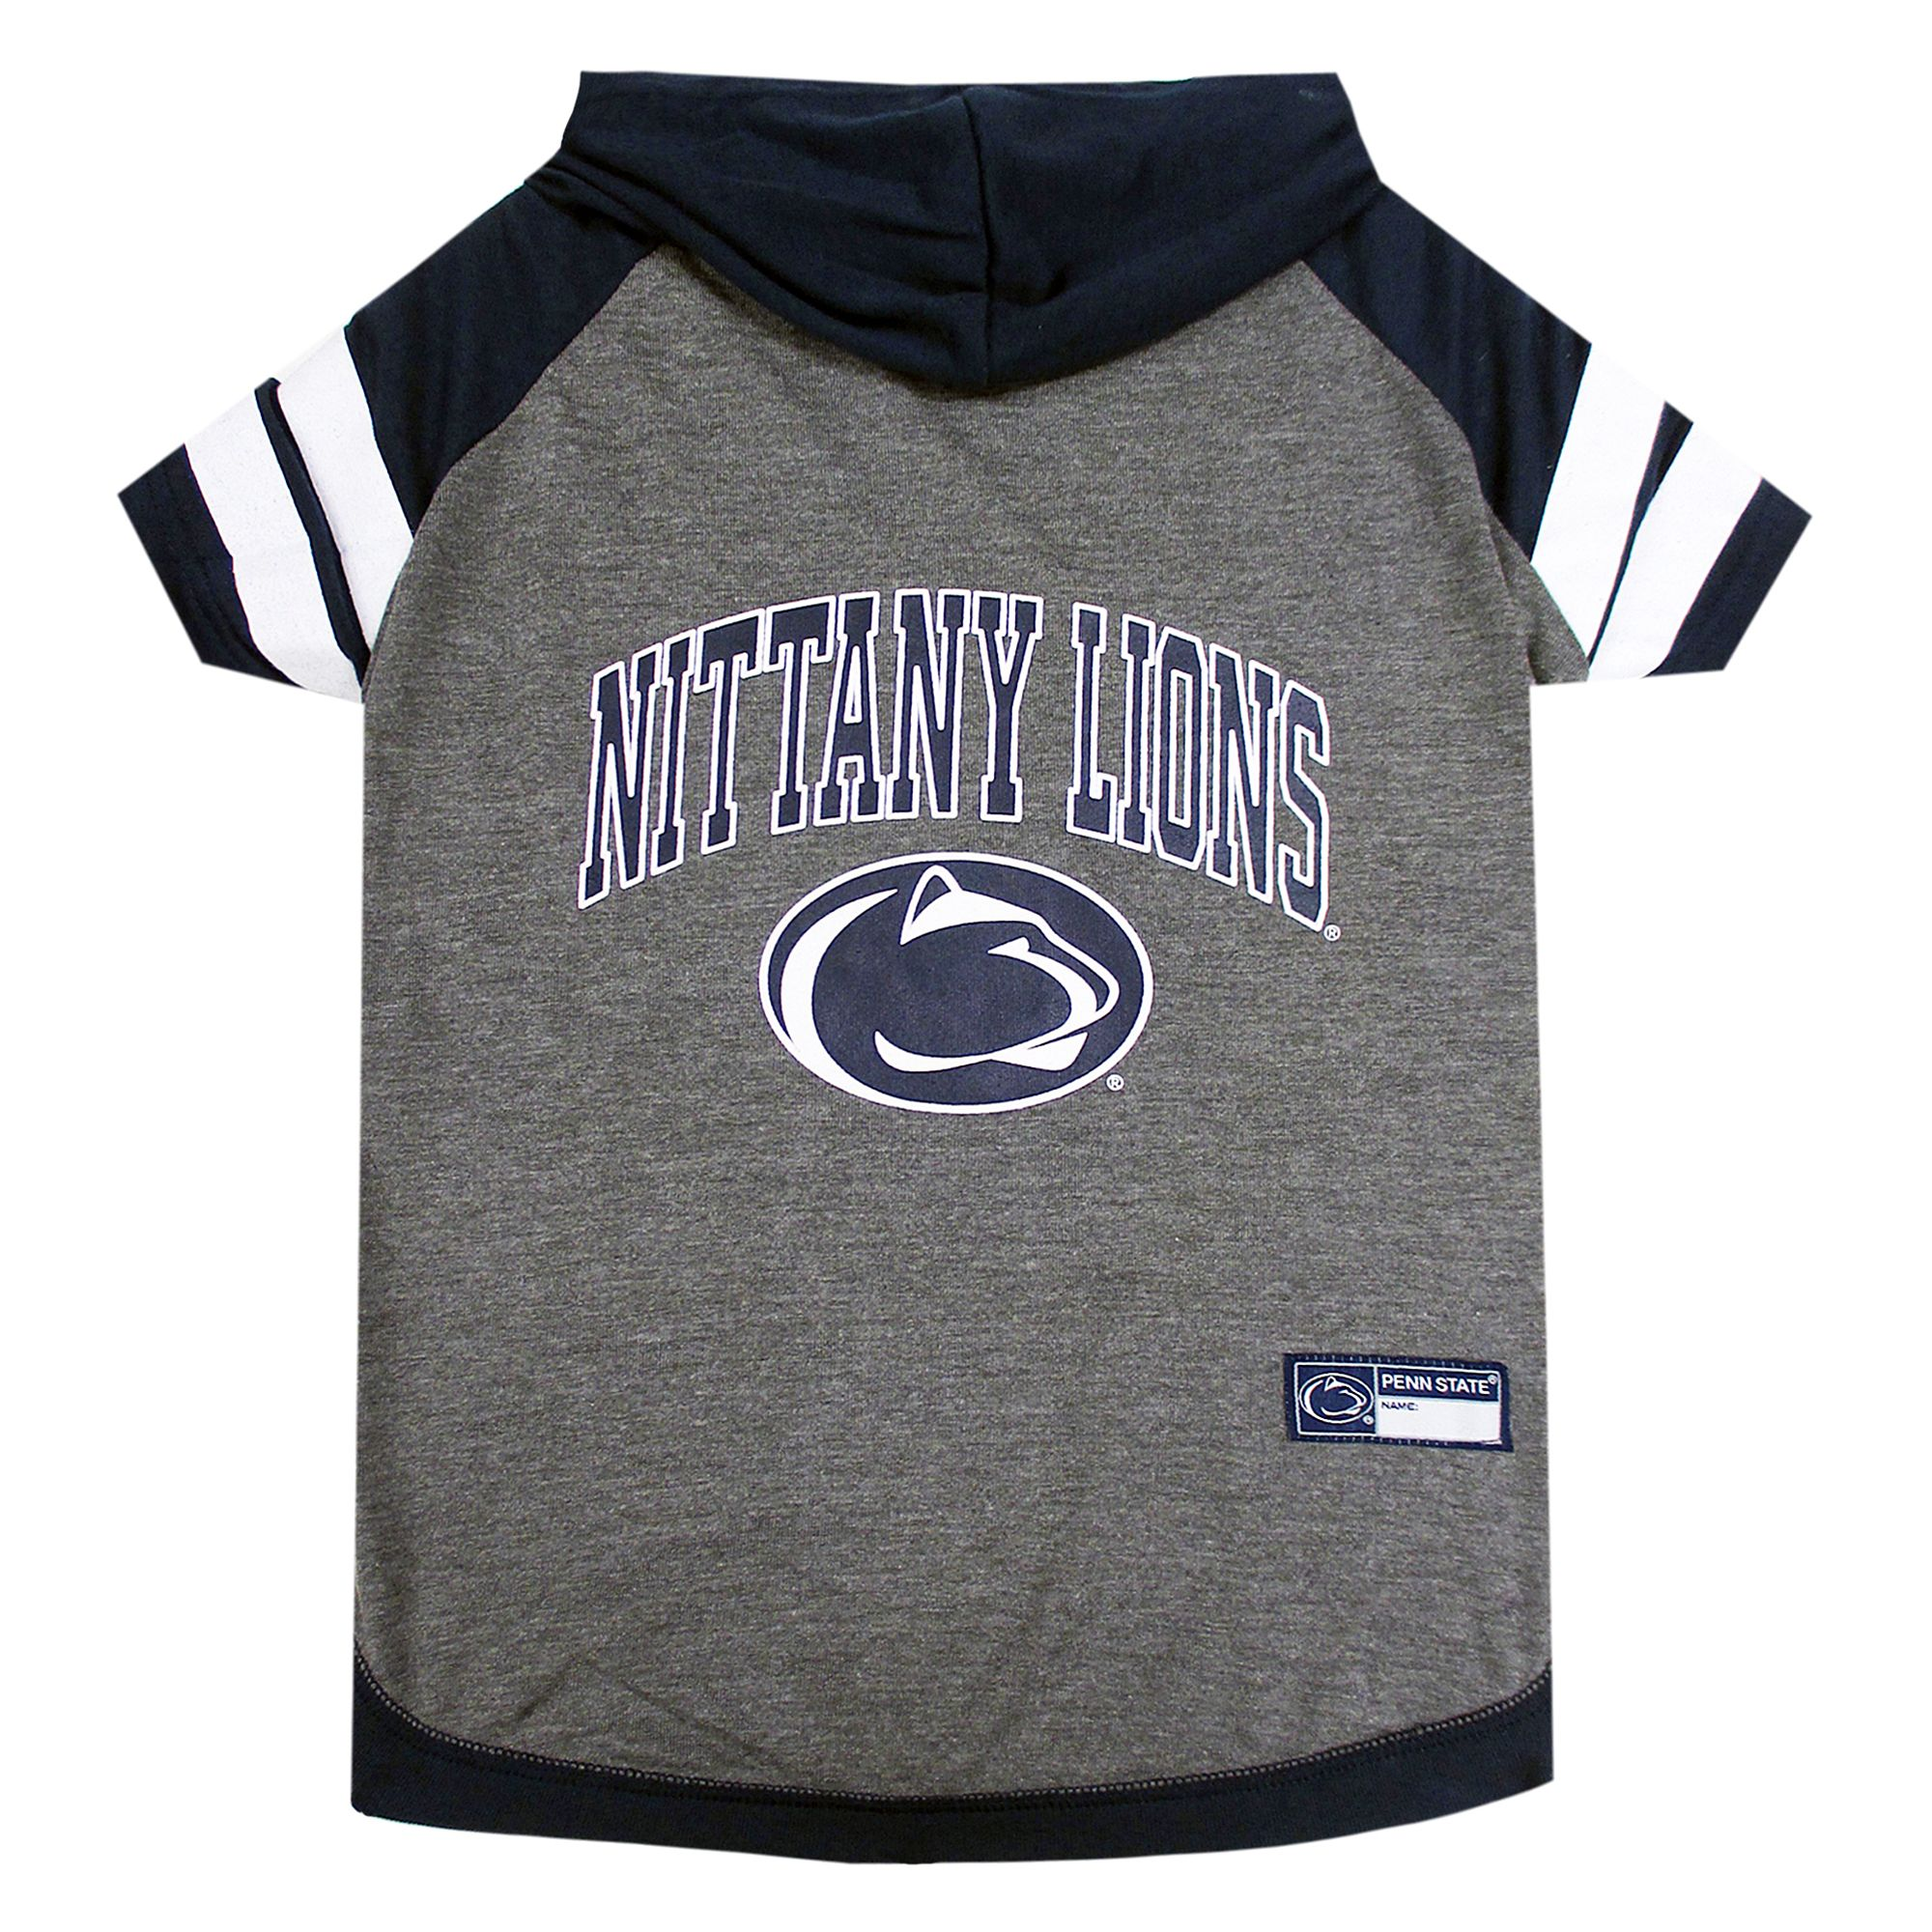 Penn State Nittany Lions Ncaa Hoodie T-Shirt size: X Small